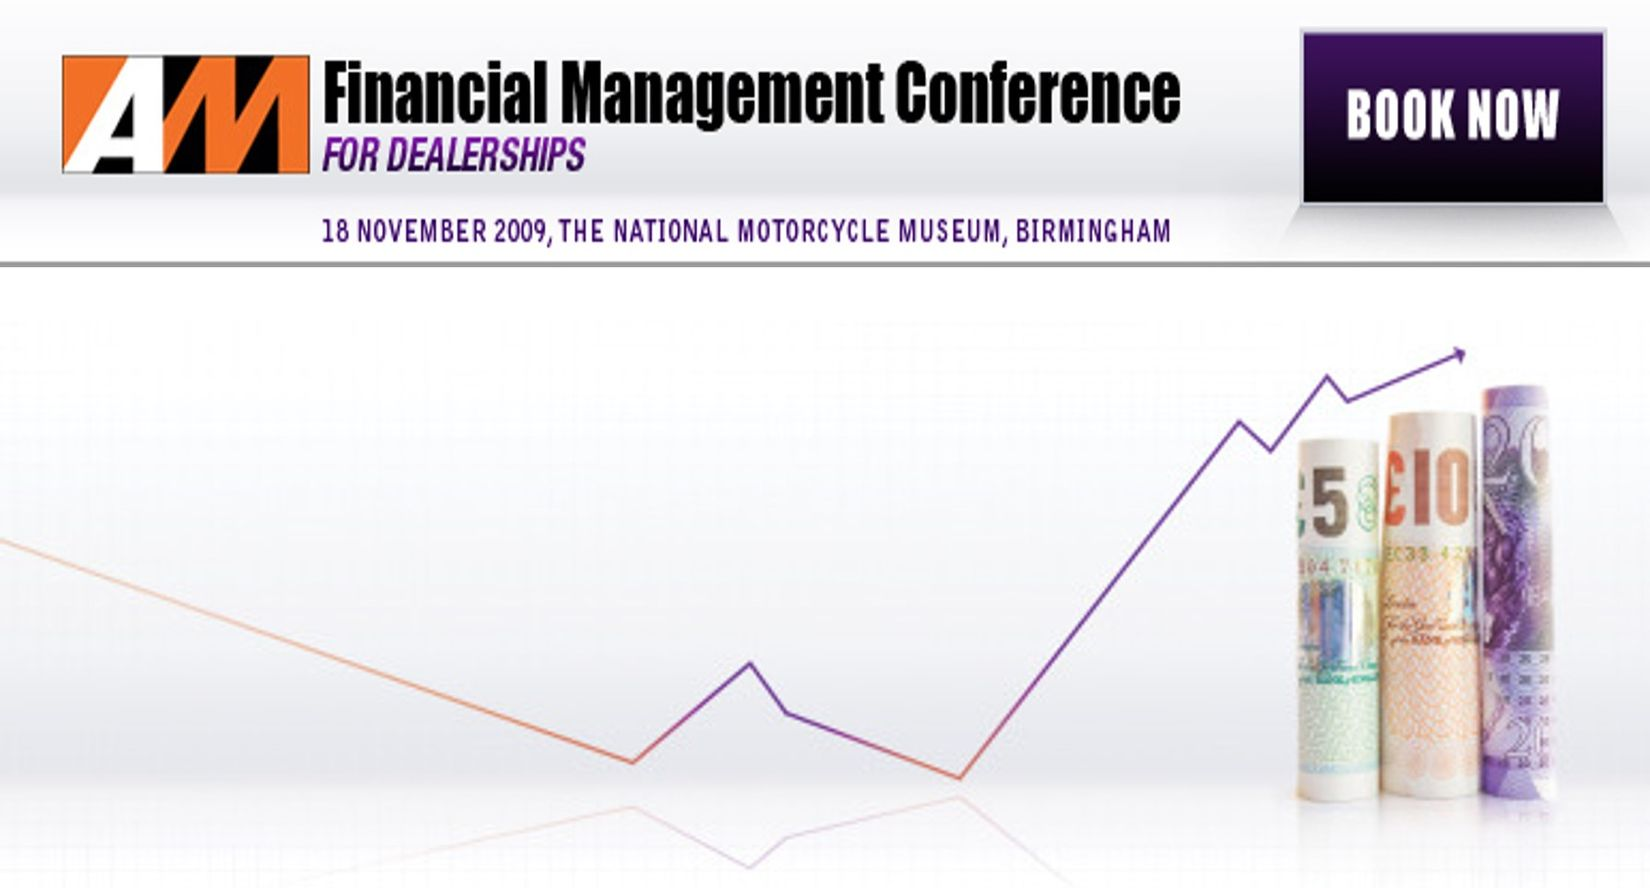 Karl Davis To Speak At Financial Management Conference